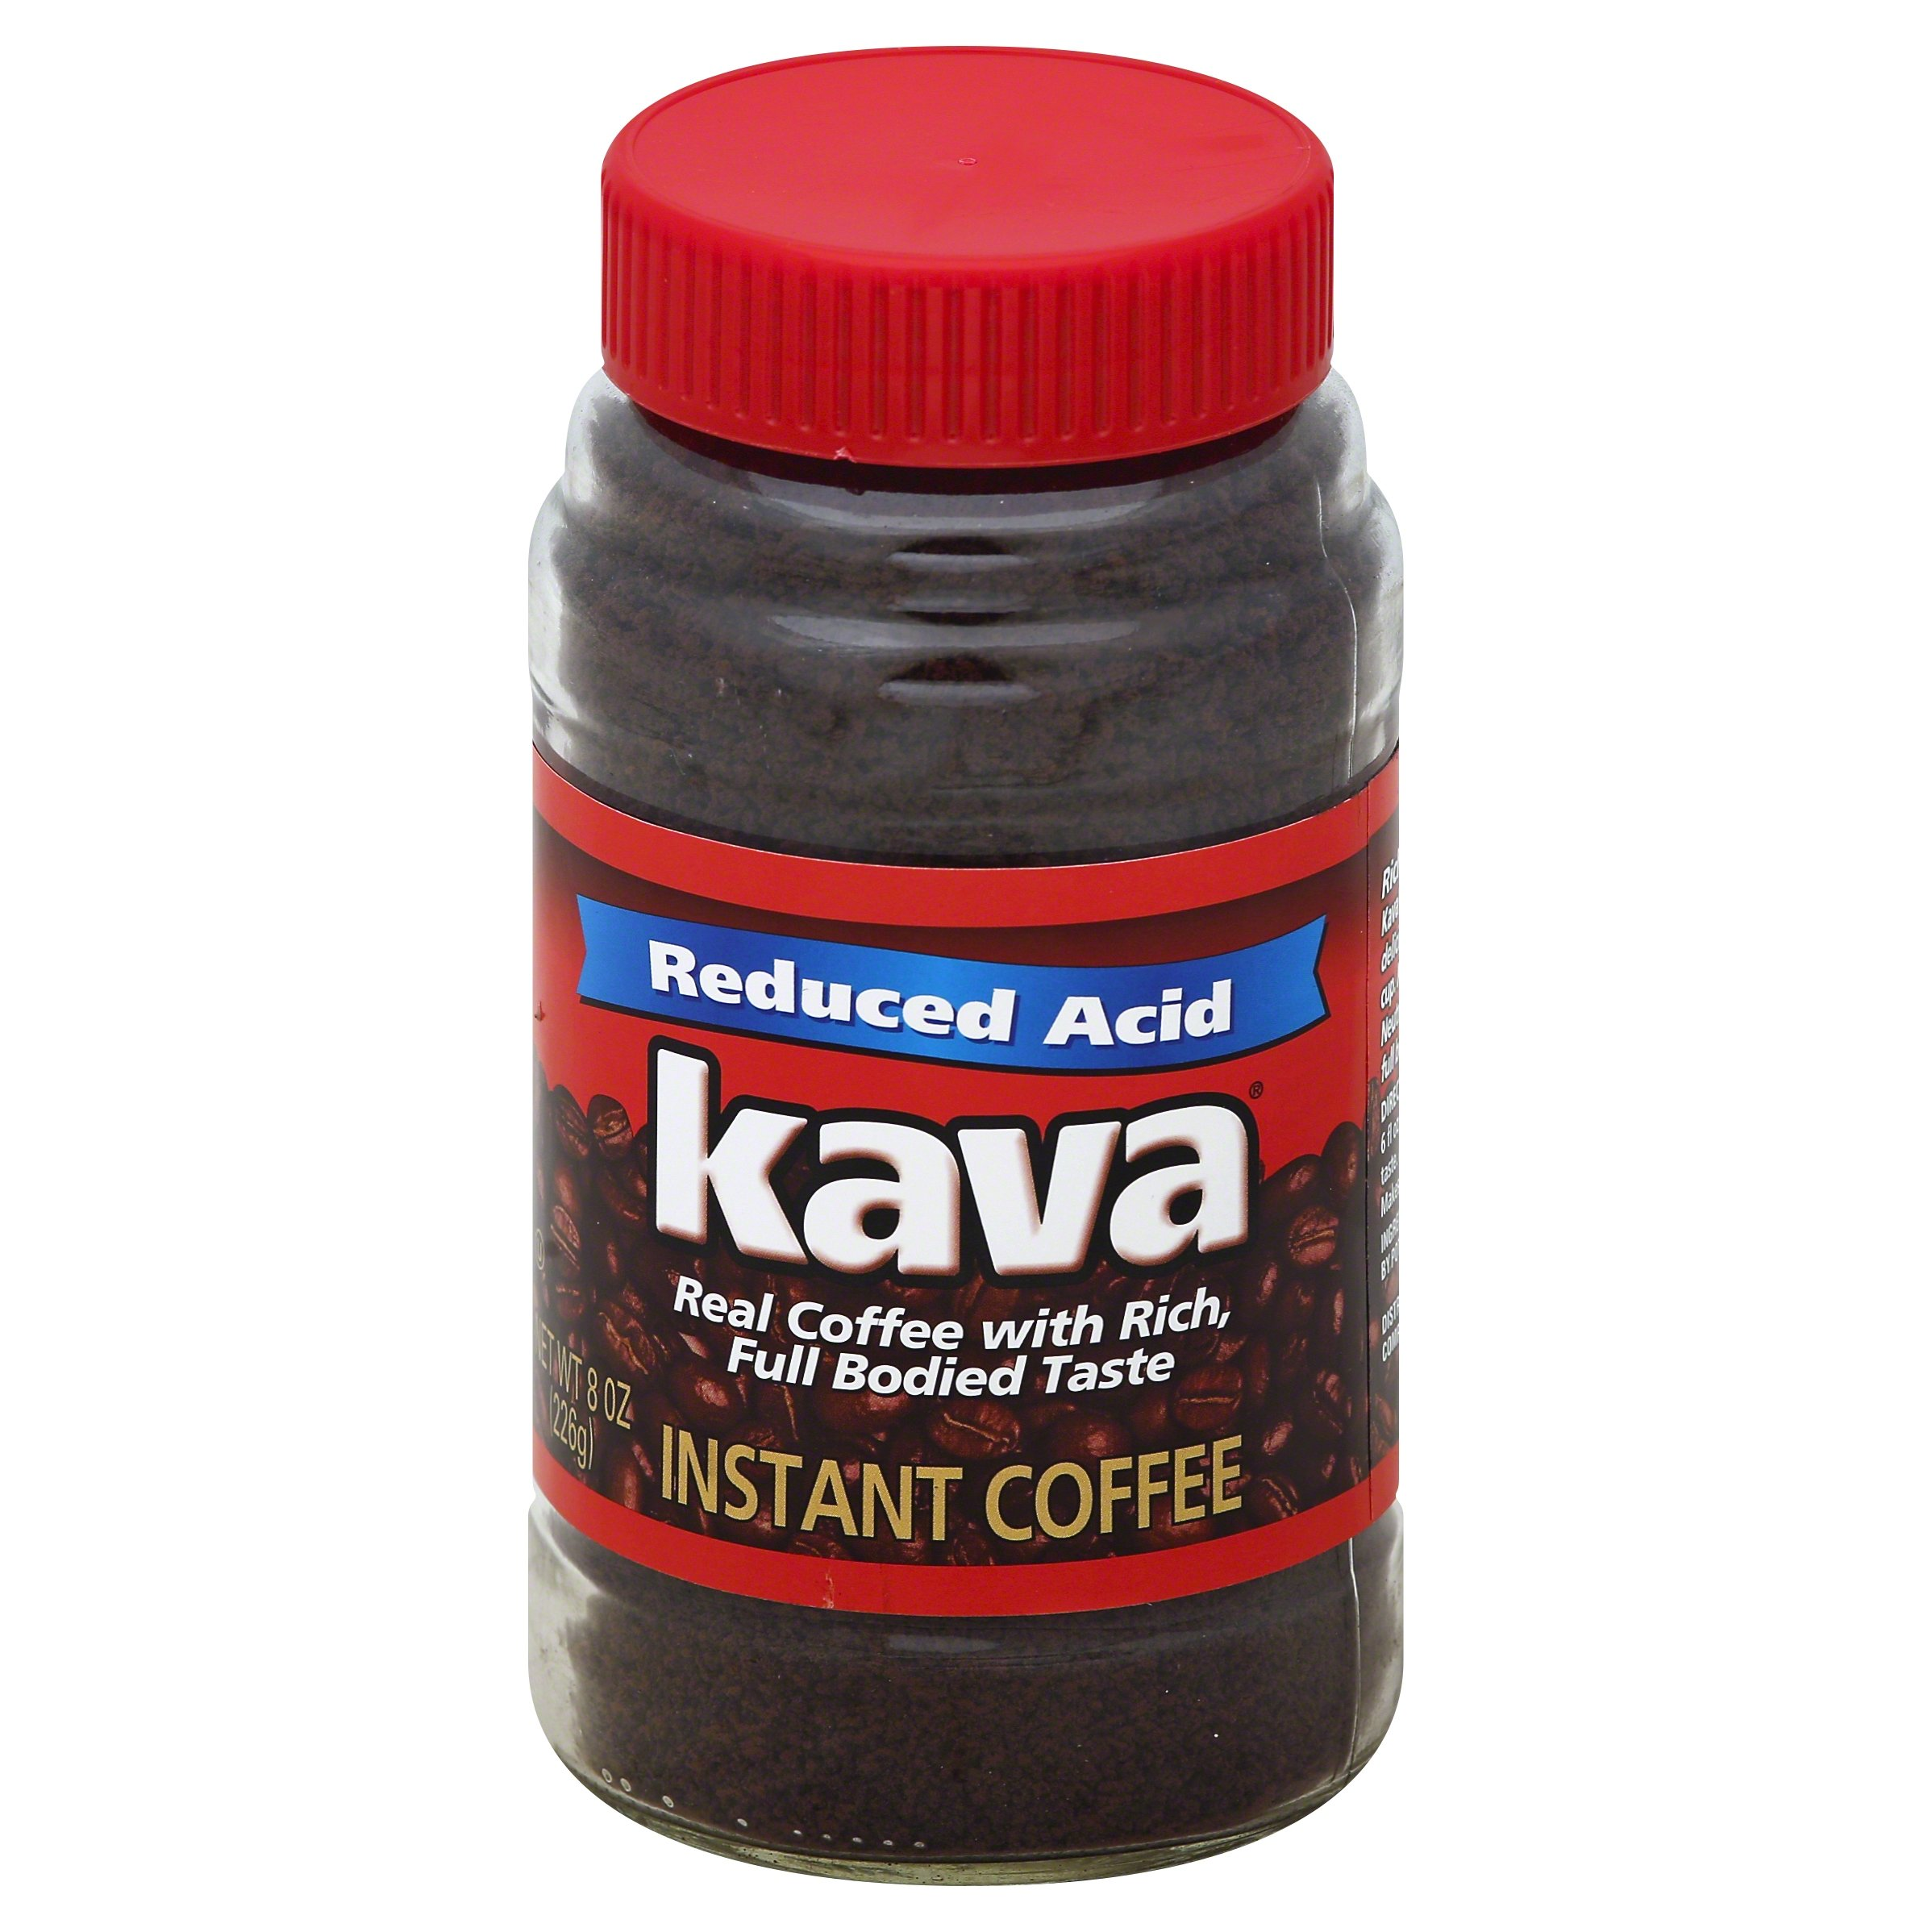 Kava Reduced Acid Instant Coffee, 8 Ounce Jars (Pack of 12)